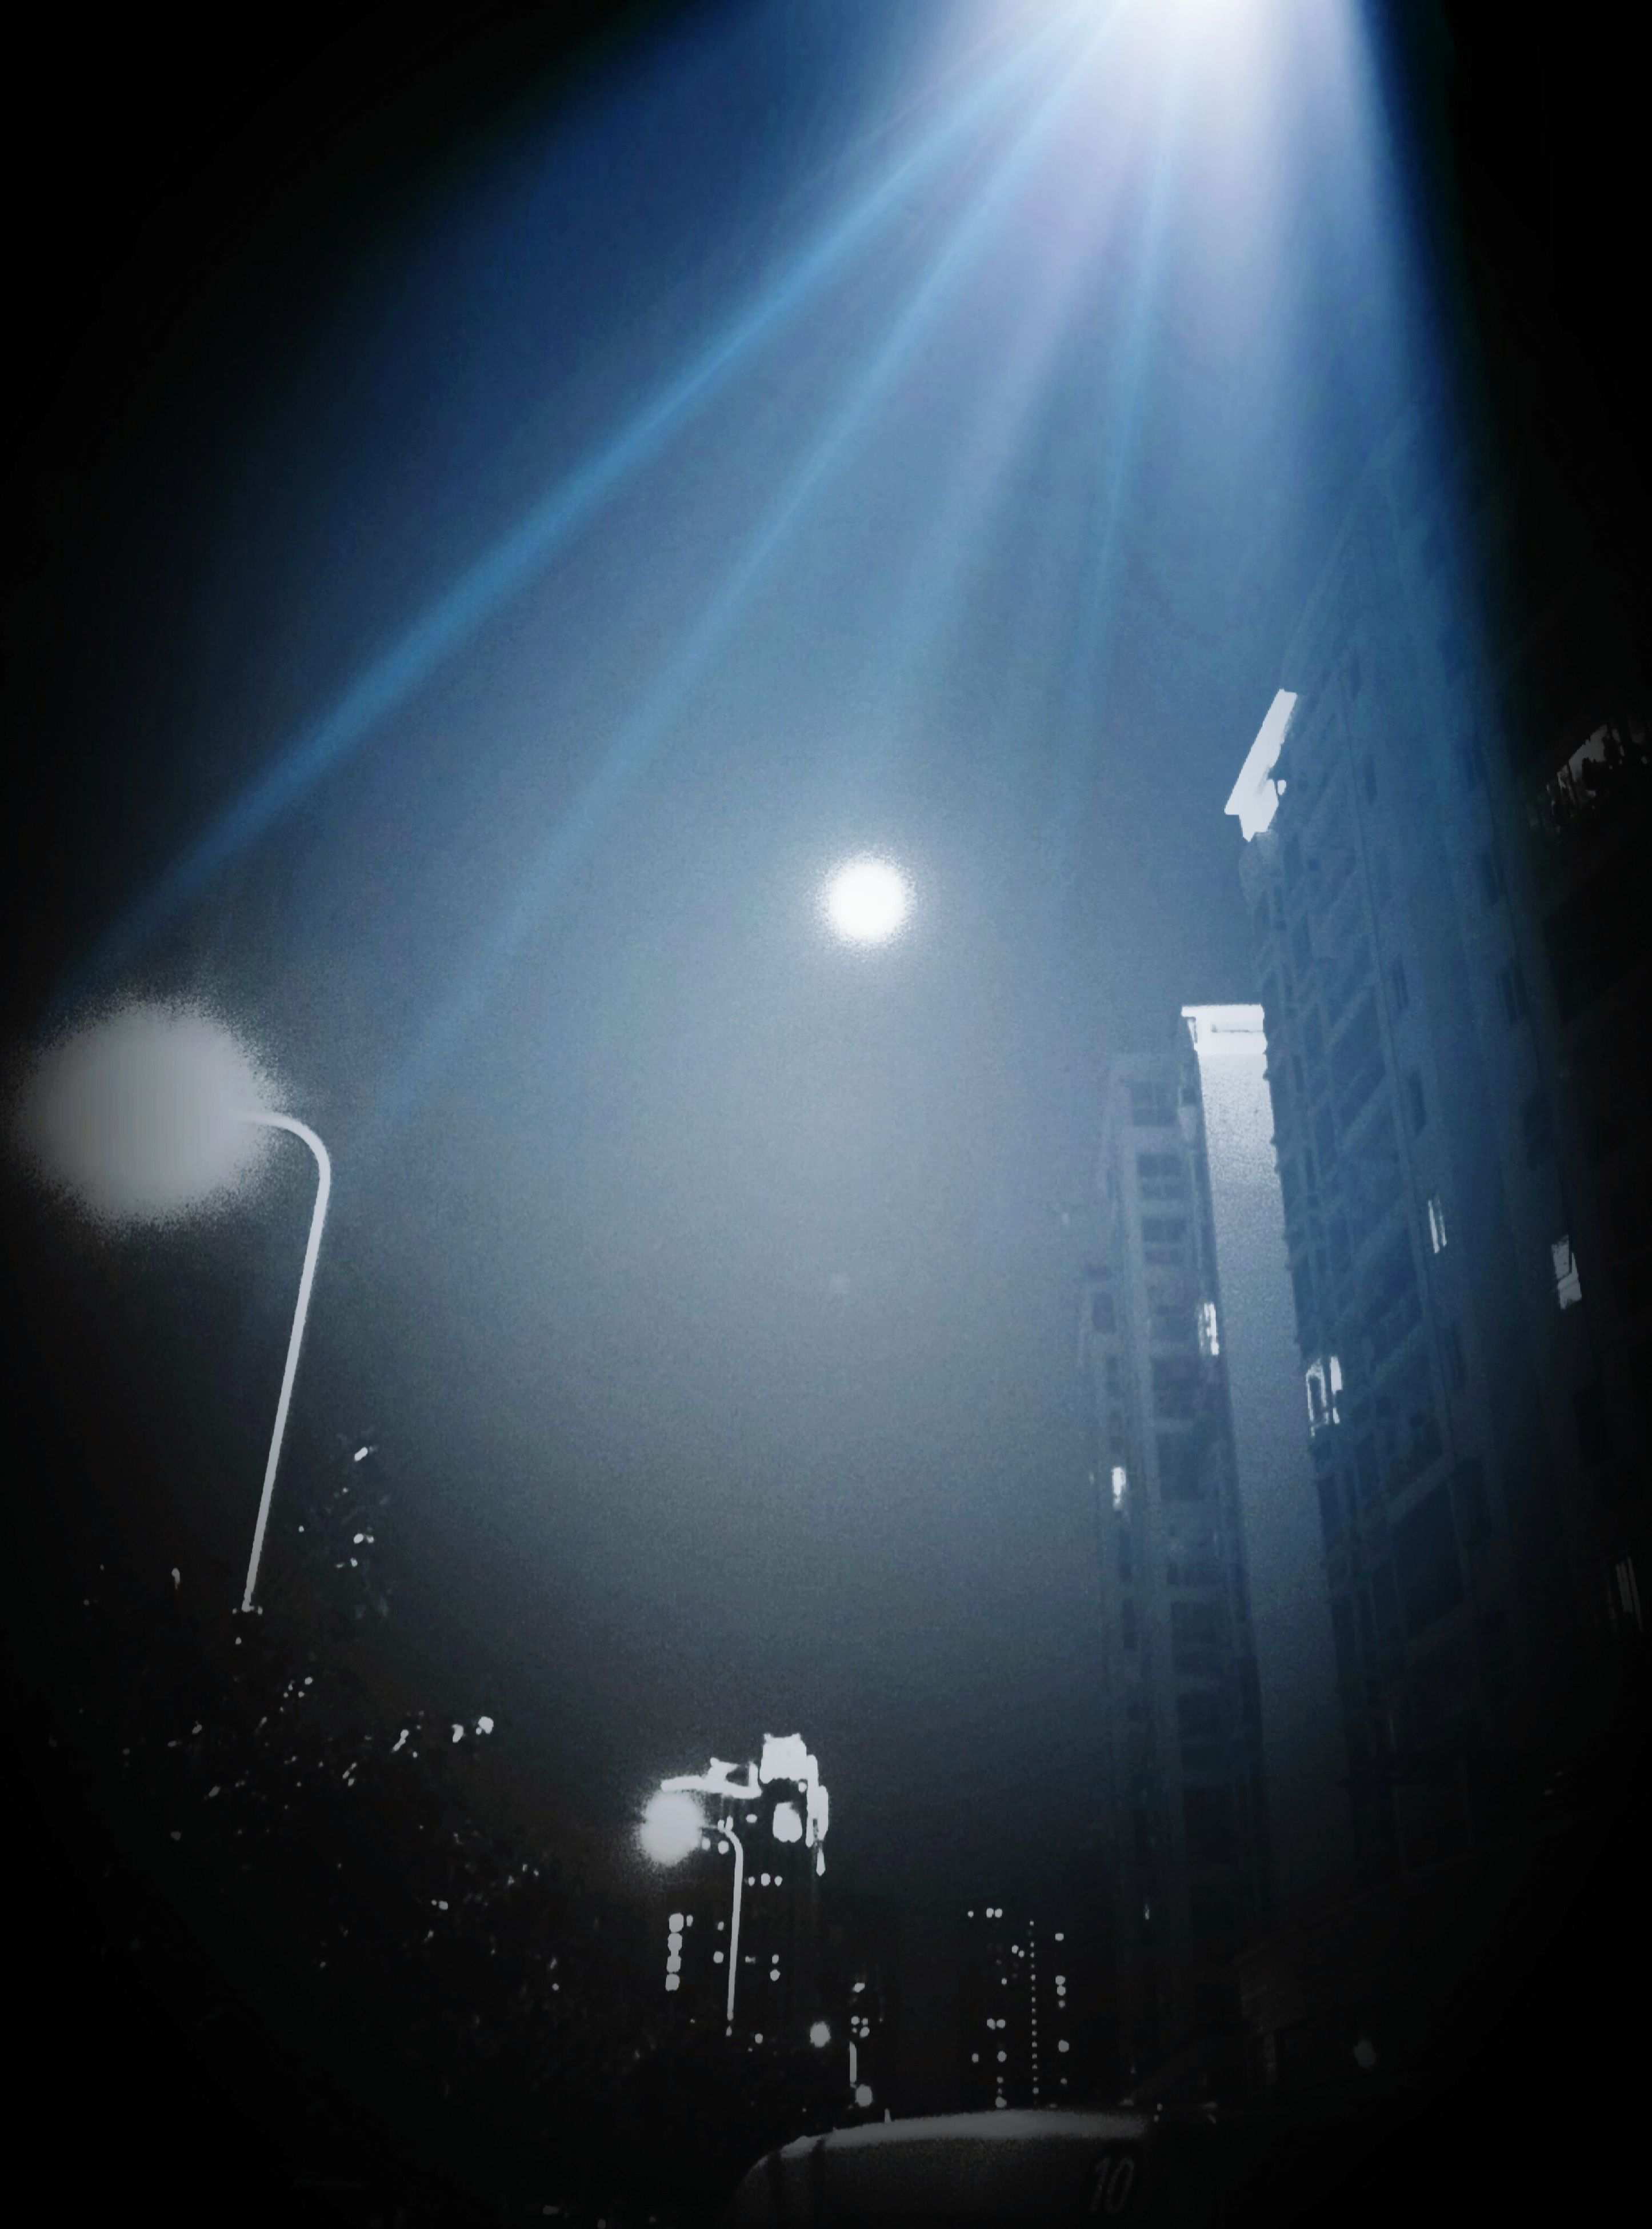 night, illuminated, architecture, building exterior, built structure, city, lighting equipment, light - natural phenomenon, skyscraper, low angle view, modern, street light, sky, light beam, tall - high, no people, glowing, transportation, outdoors, dark